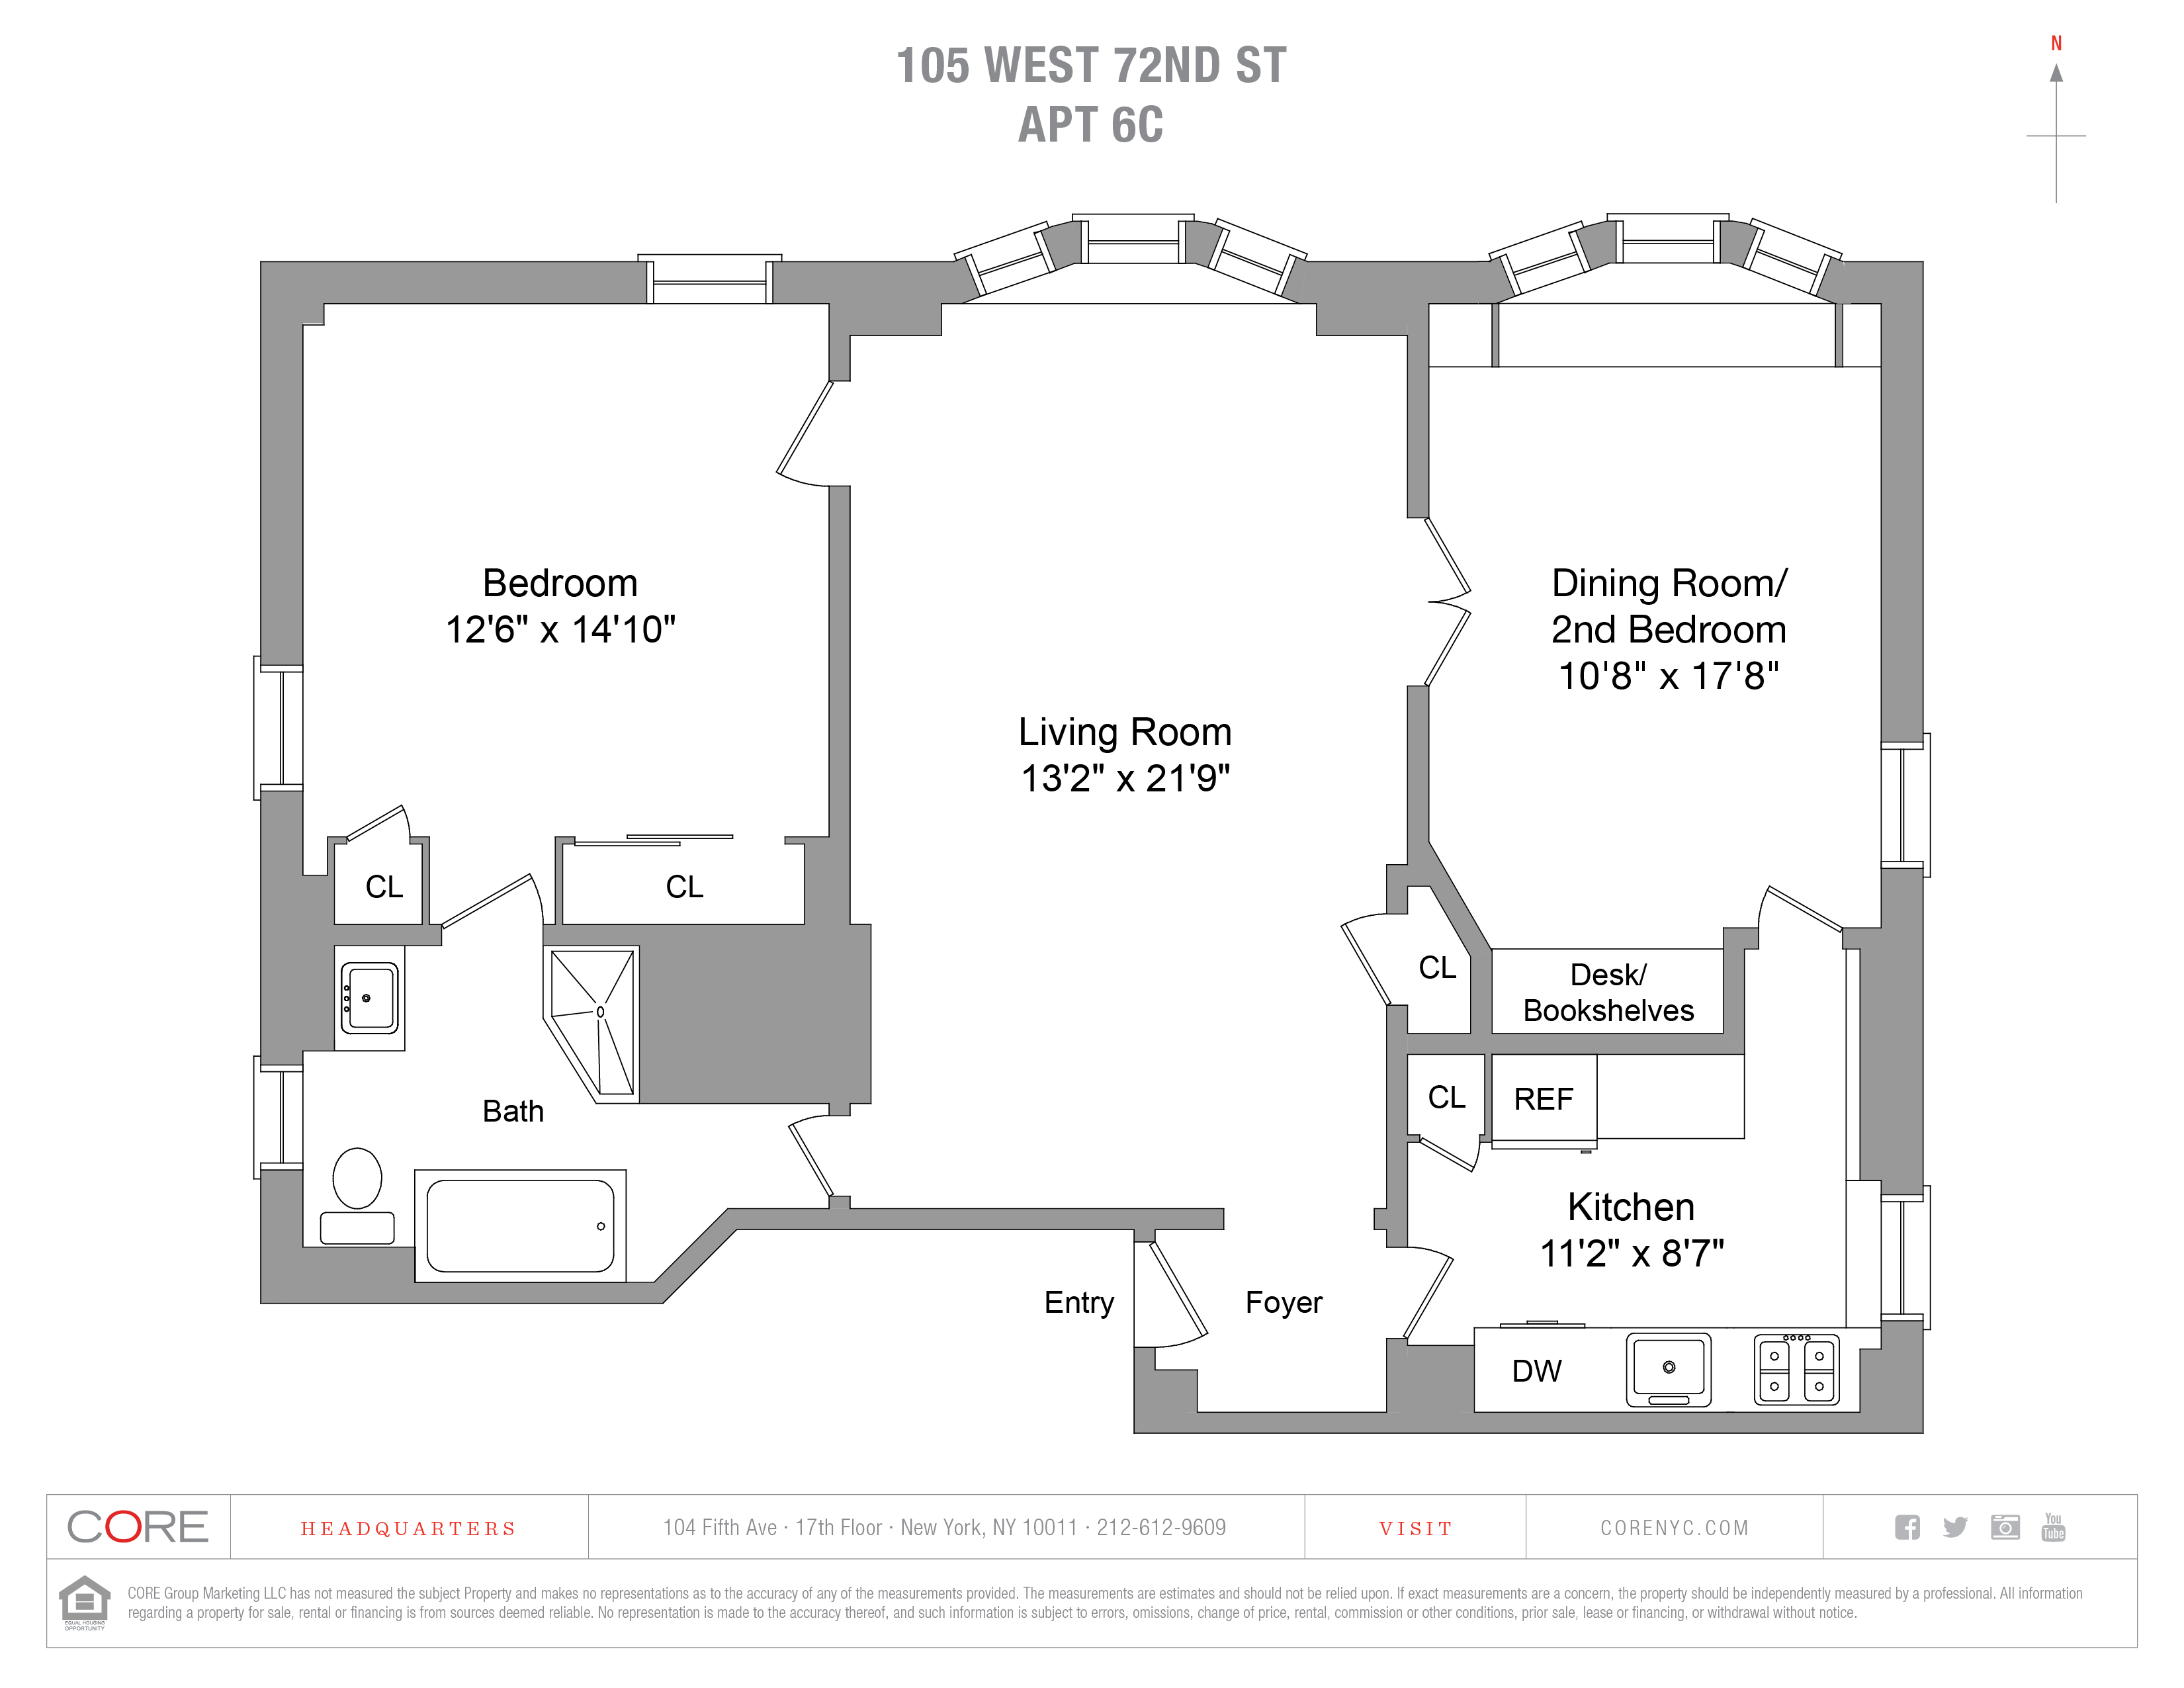 105 West 72nd St. 6C, New York, NY 10023